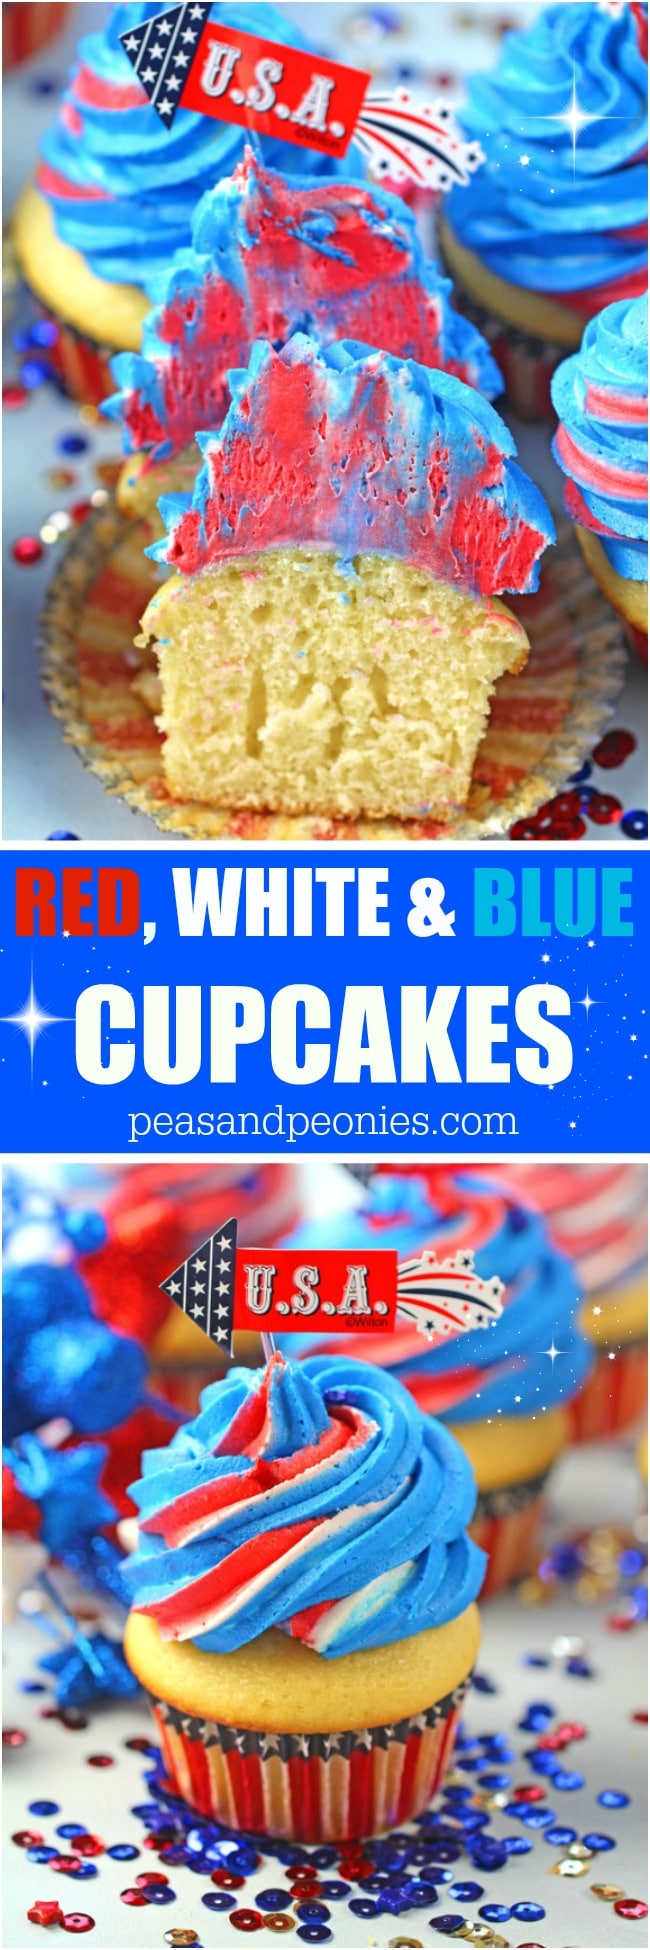 Red White and Blue Cupcakes topped with sweet red, white and blue buttercream swirl.